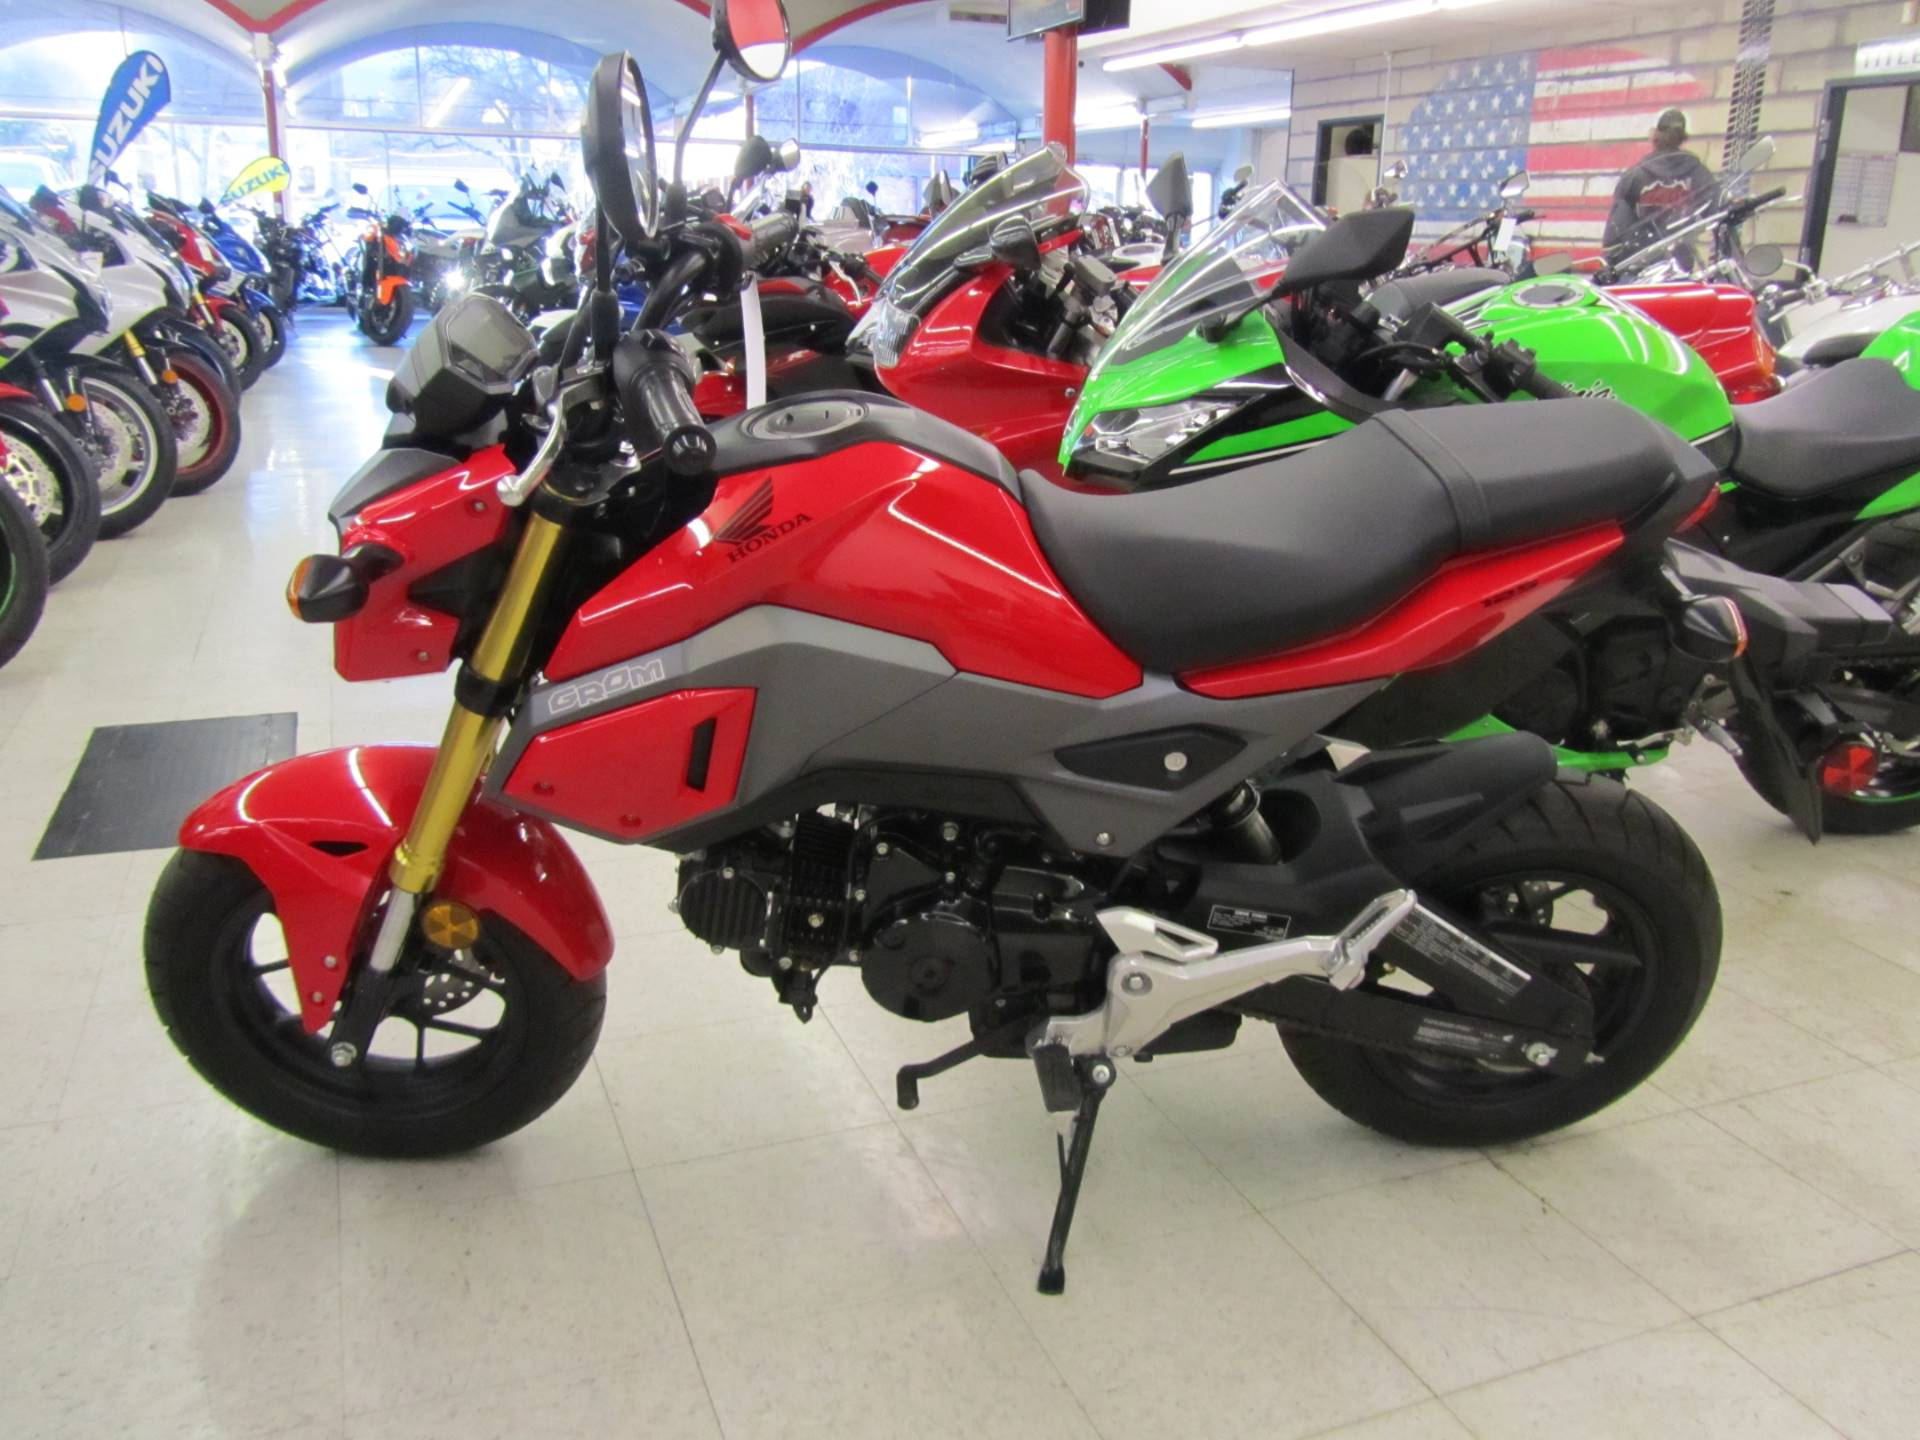 Used 2017 Honda Grom Motorcycles in Colorado Springs CO